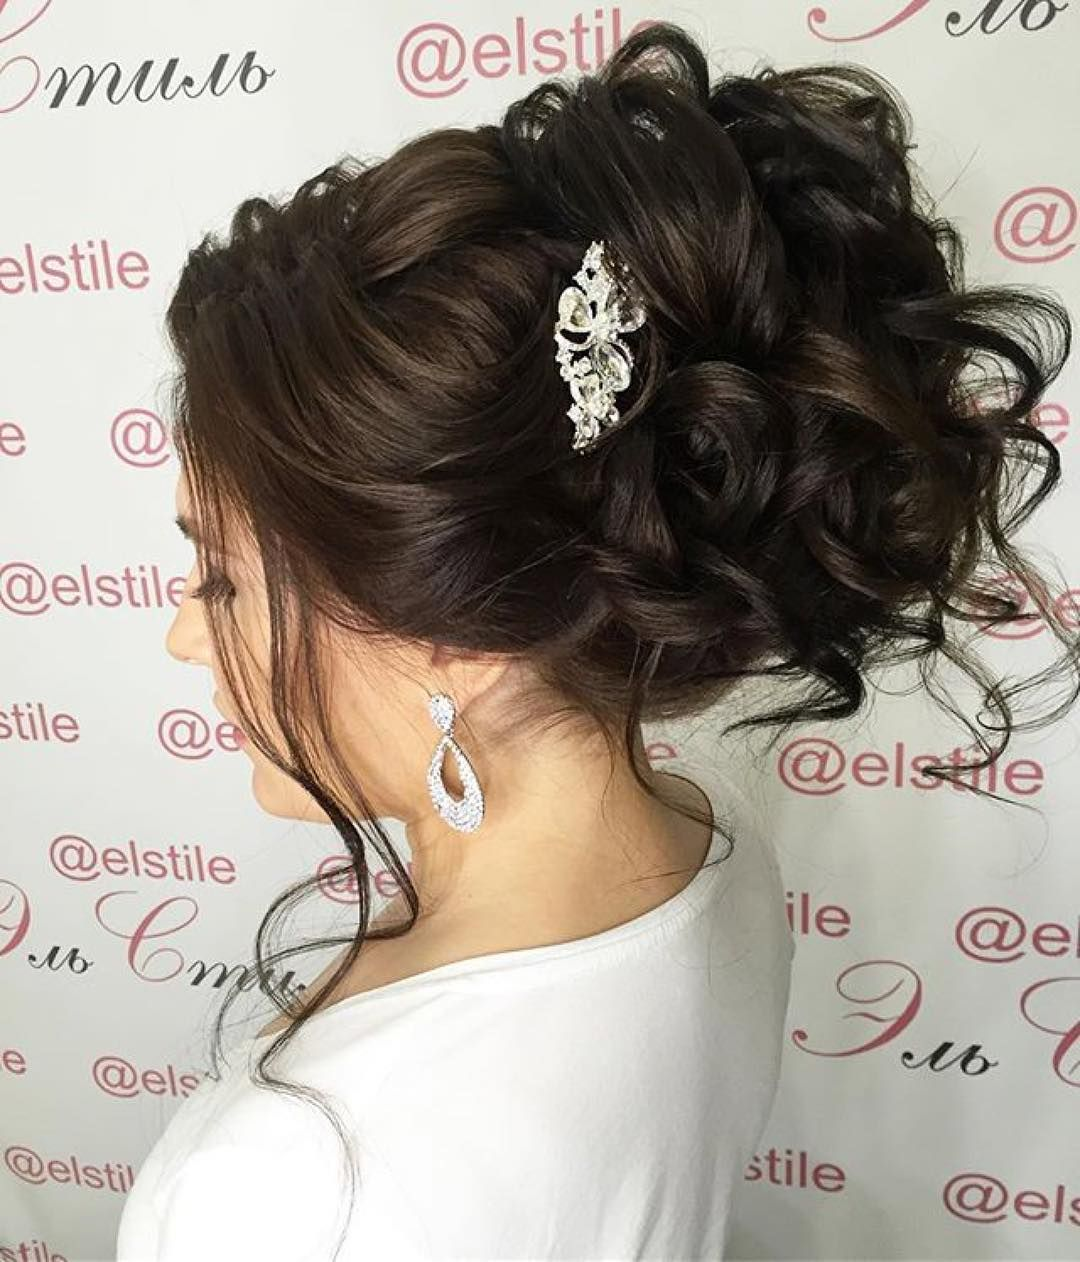 wedding hair & makeup at @elstile 💕 • book your date 💕 text 1